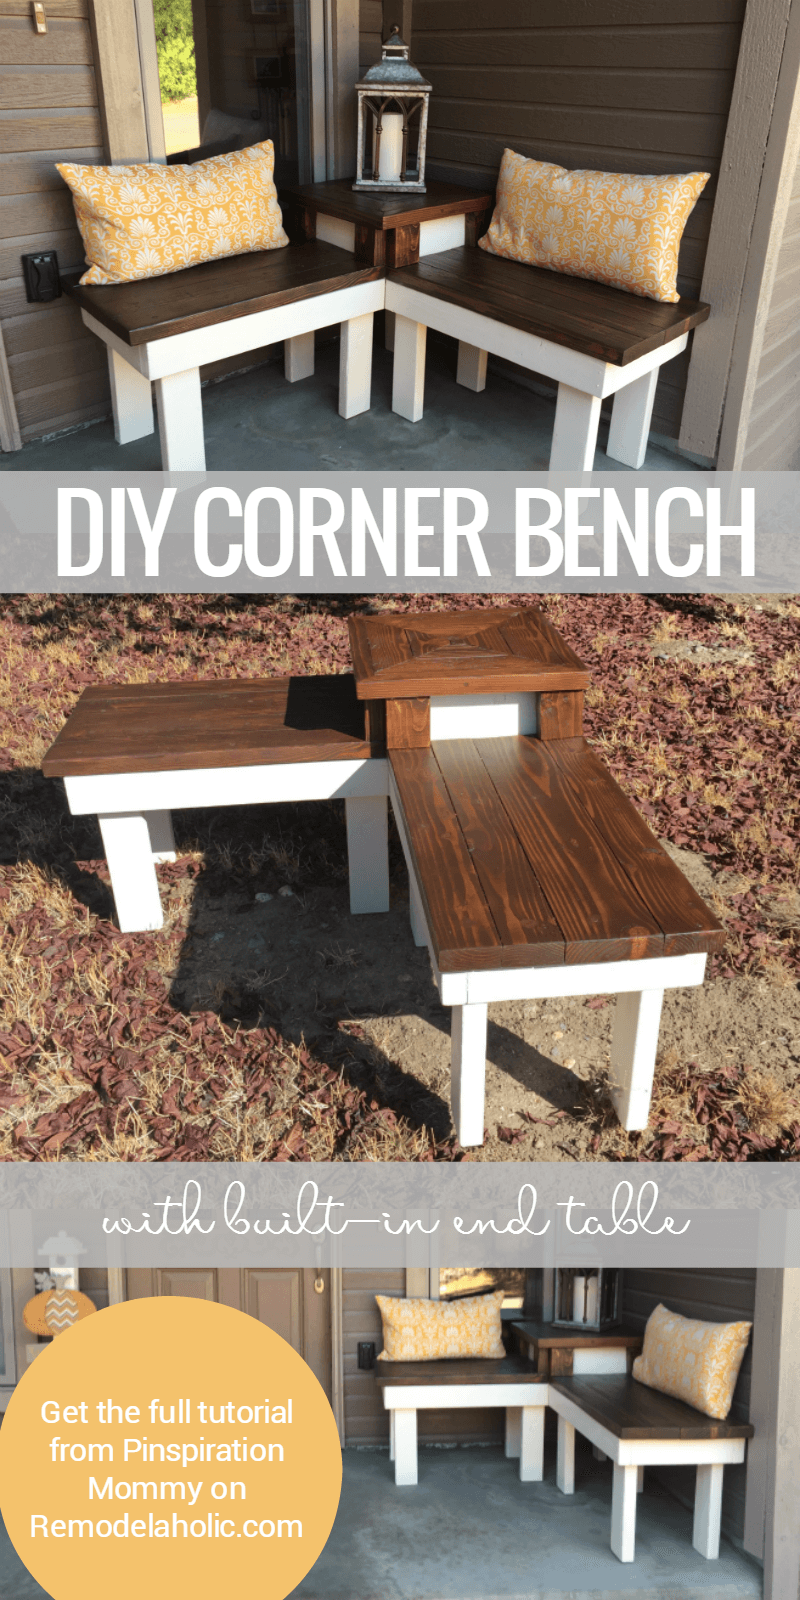 Innovative Corner Bench with Built-In Side Table